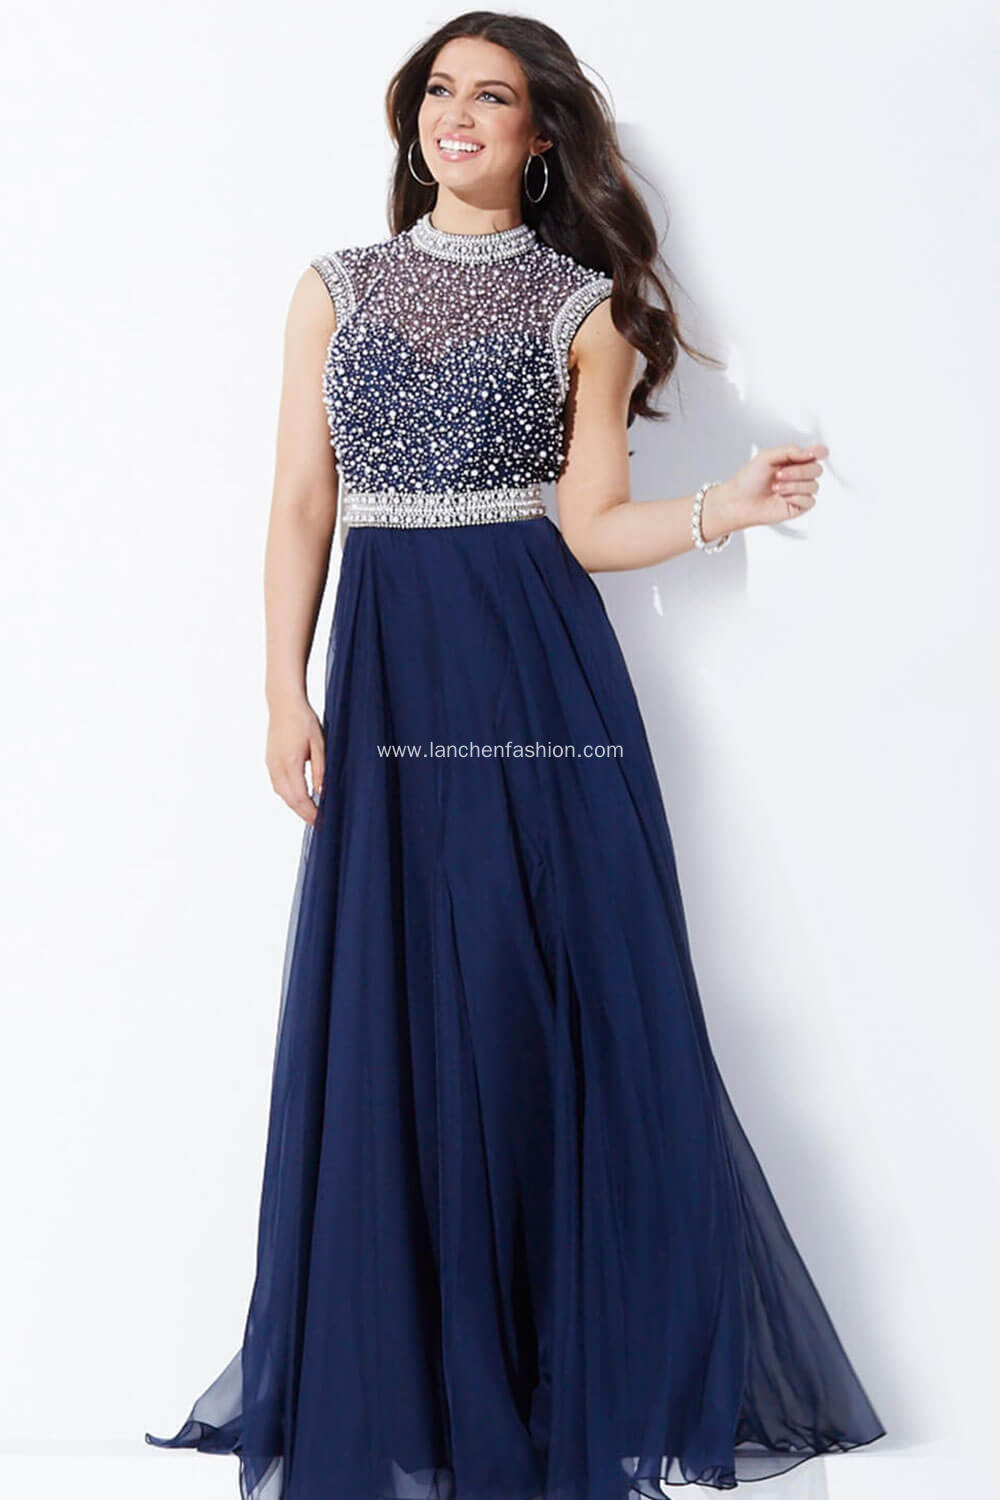 Sleeveless Shimmery Floor Length Prom Dress